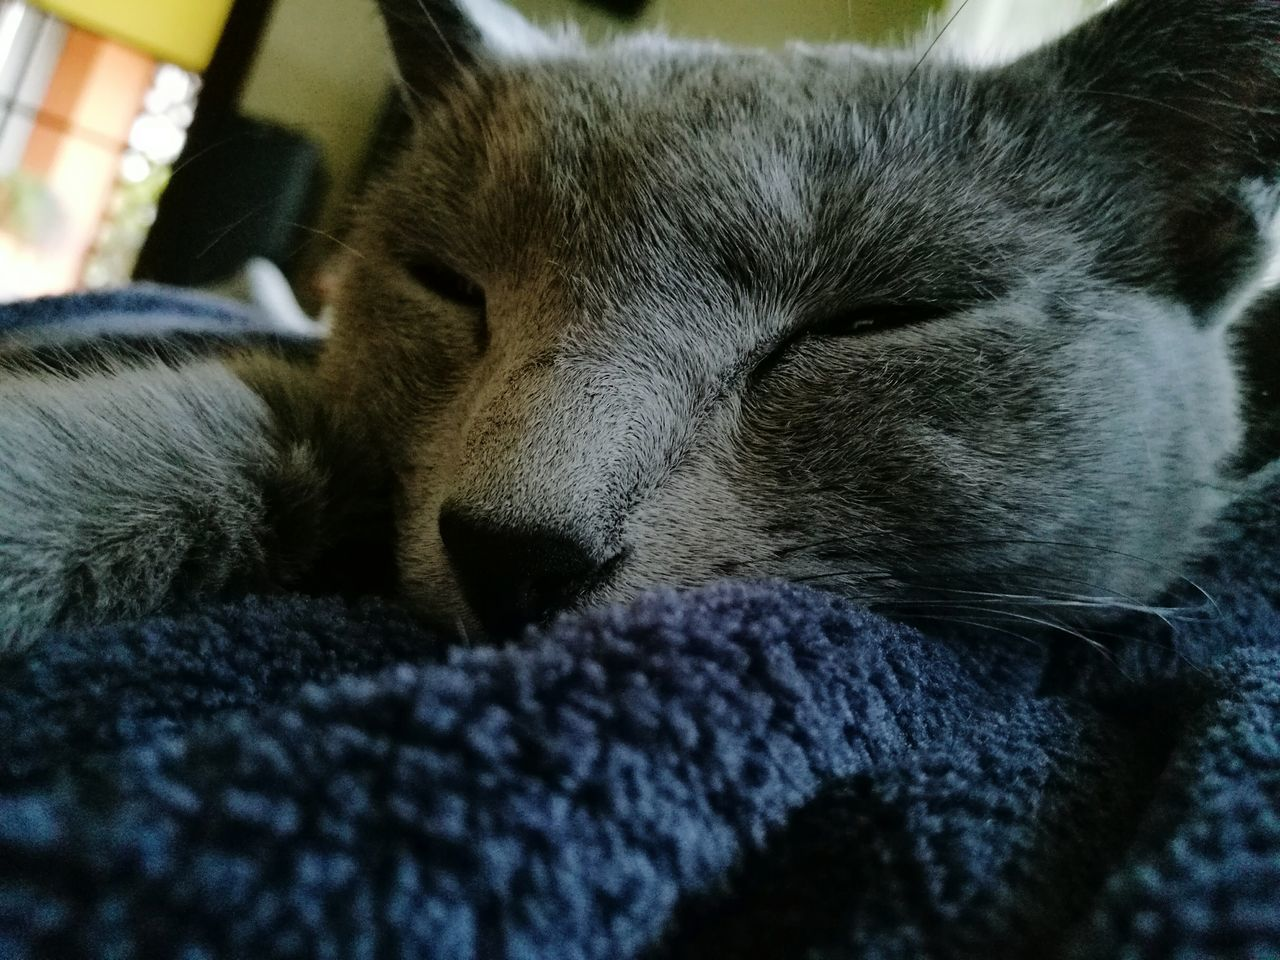 animal themes, mammal, one animal, domestic animals, relaxation, pets, indoors, sleeping, close-up, no people, lying down, domestic cat, bed, nature, day